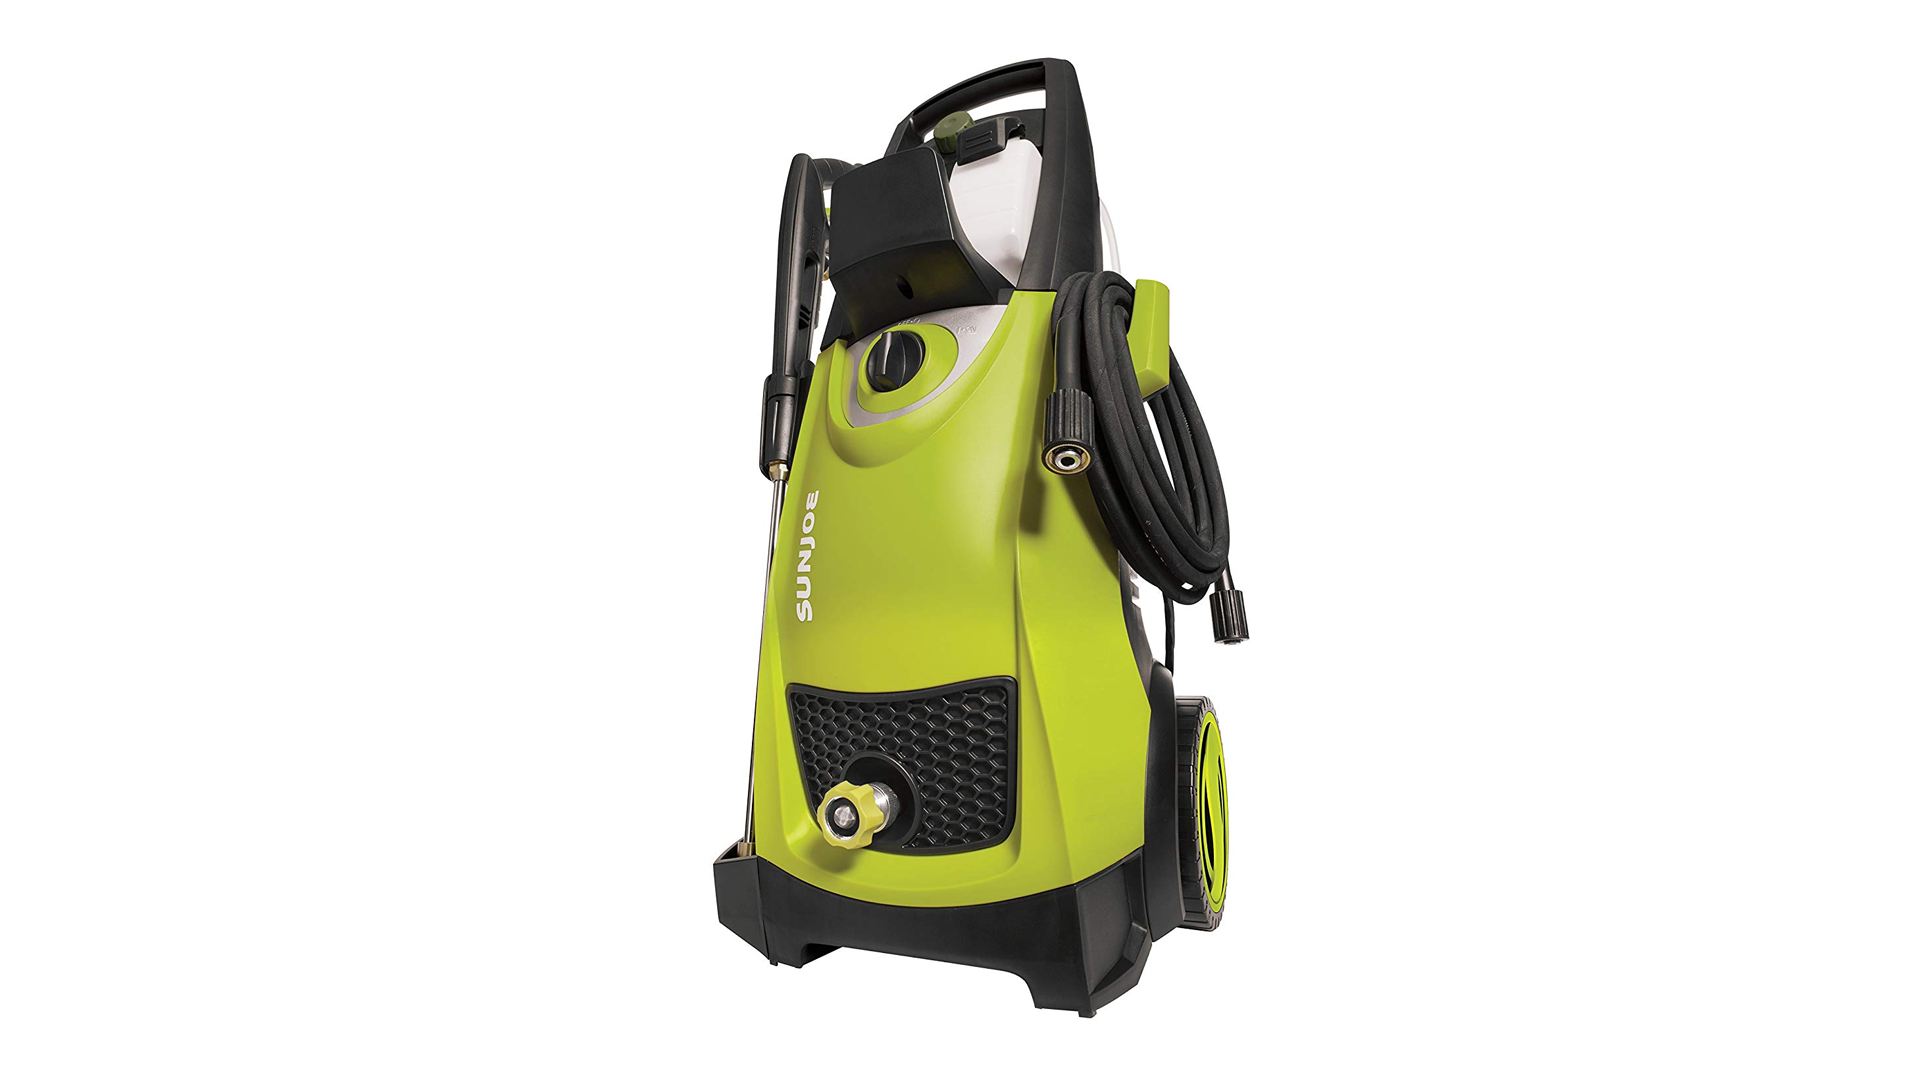 the Sun Joe SPX3000: a powerful, affordable electric pressure washer